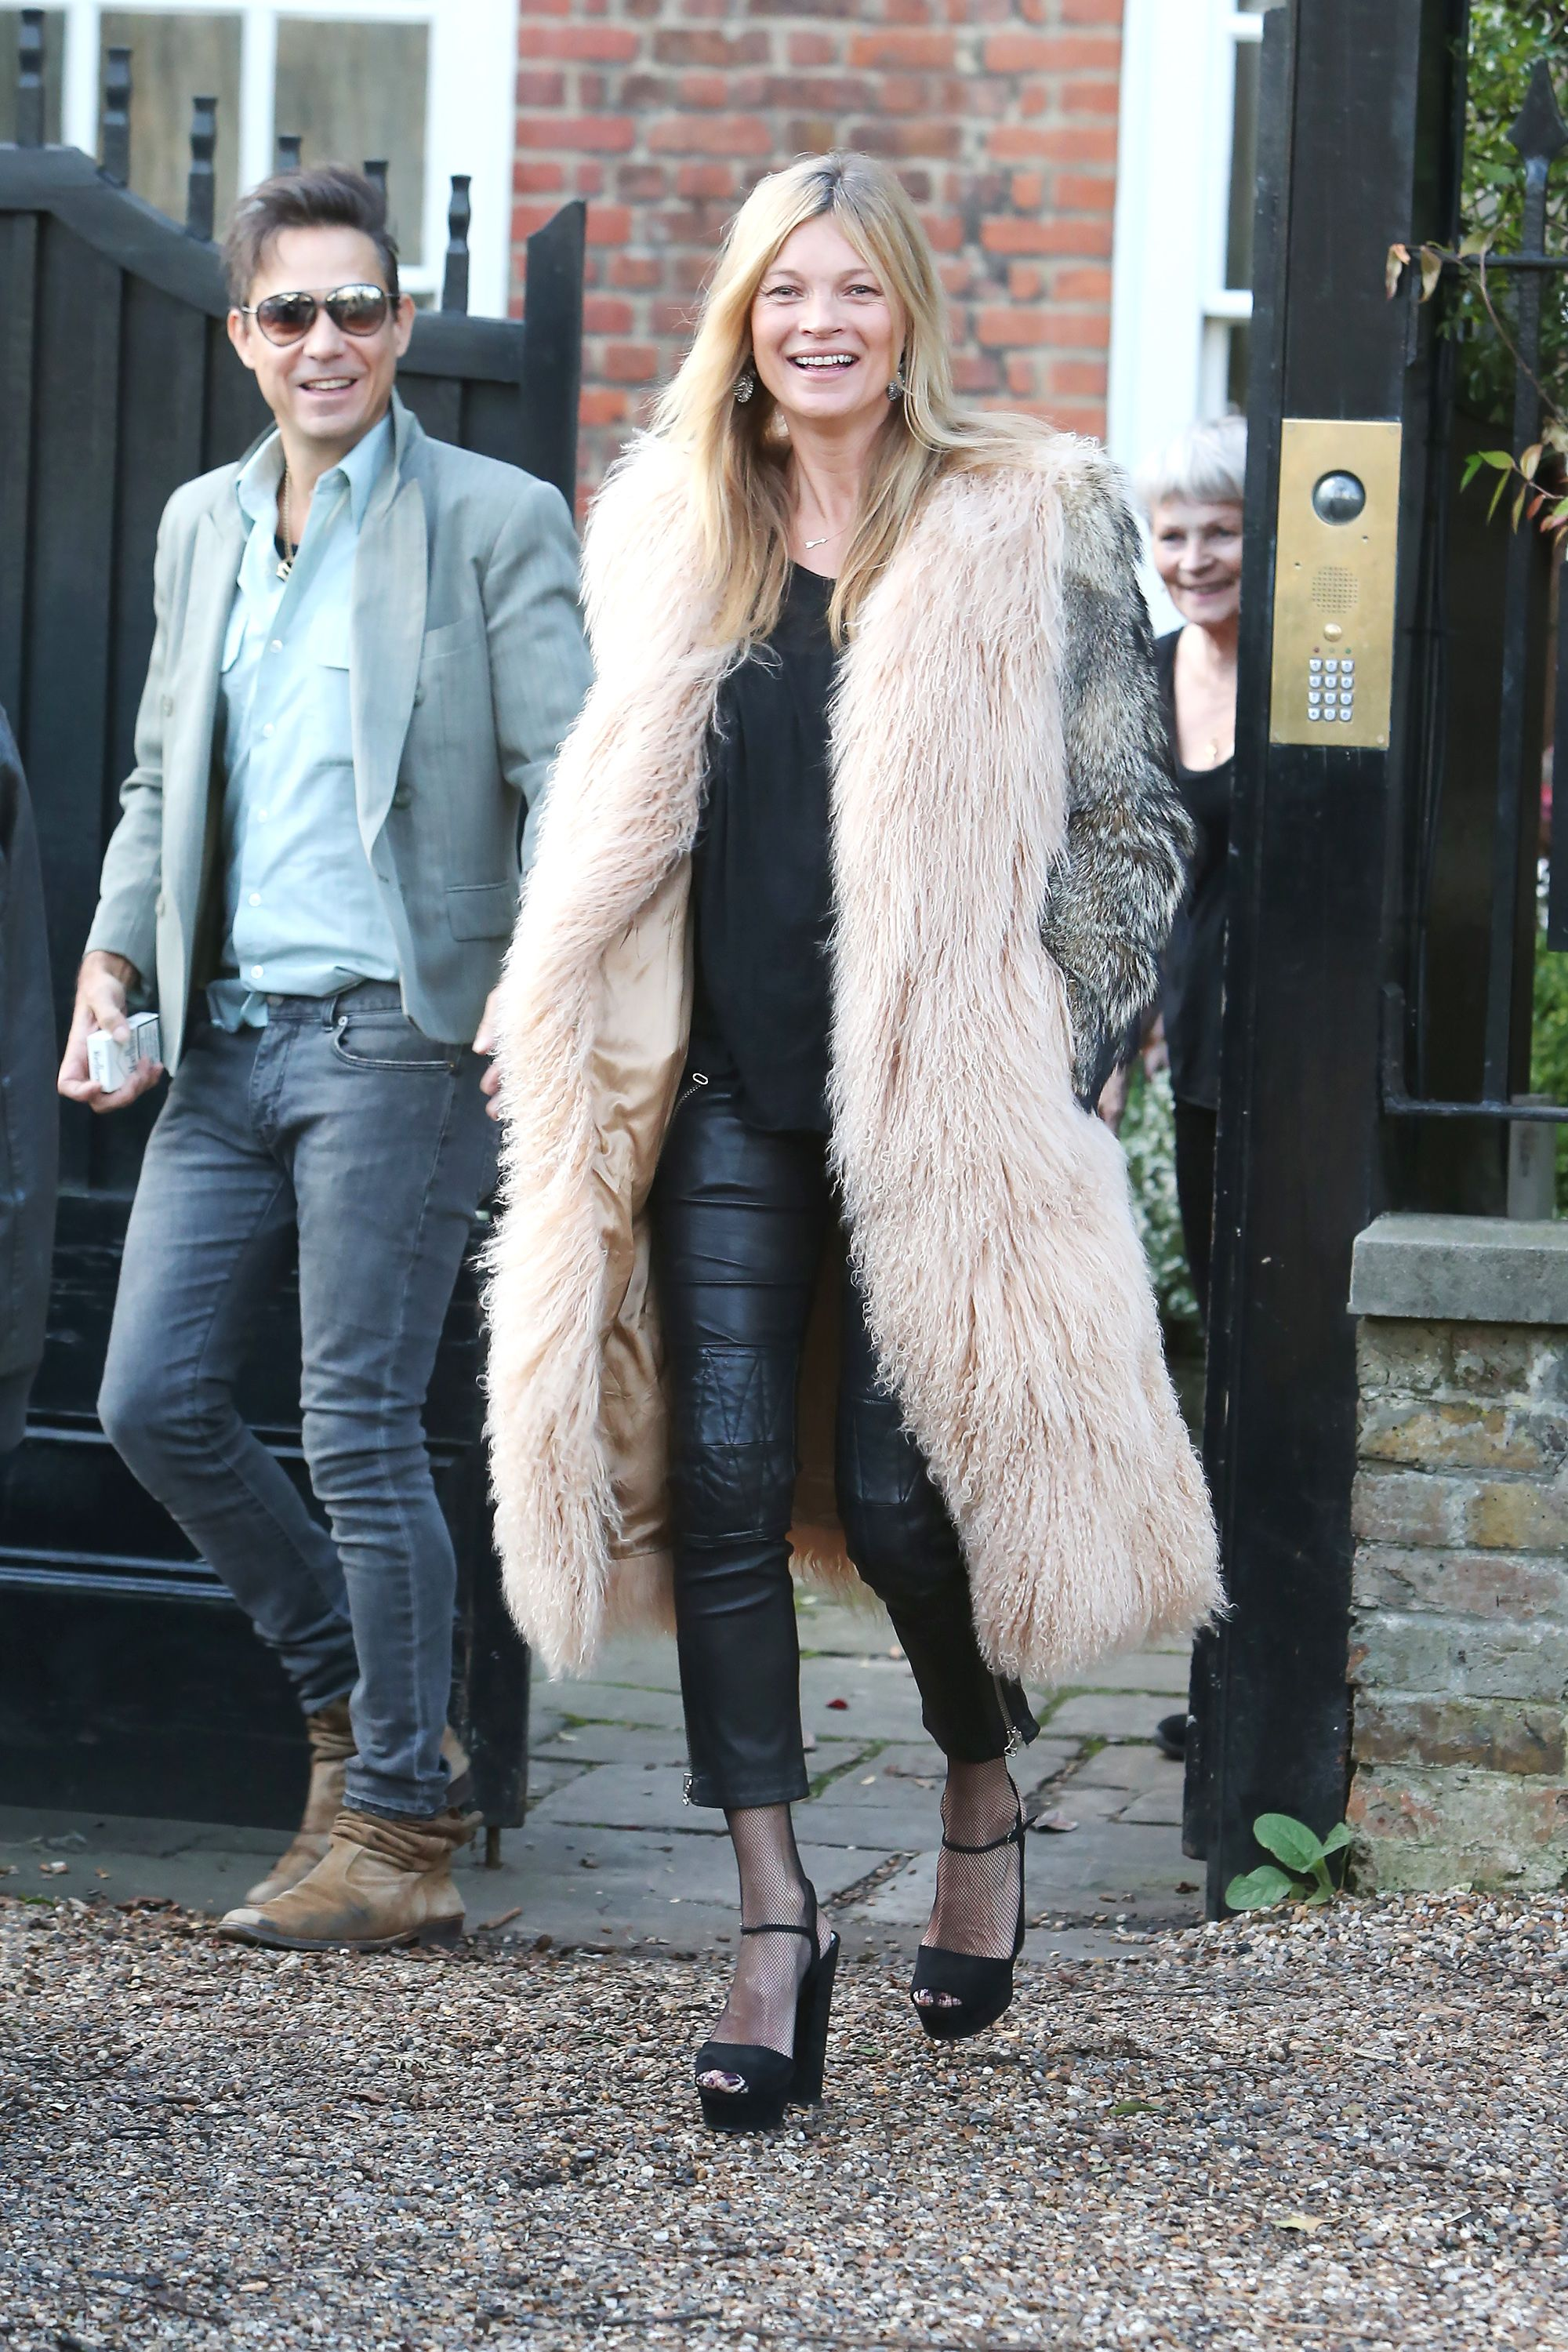 LONDON, UNITED KINGDOM - JANUARY 16: Kate Moss wears a bright smile and a long furry coat as she heads to the Cotswolds with husband Jamie Hince to celebrate her 41st birthday on January 16, 2015 in London, England. Photo by Fjeraku/GC Images)